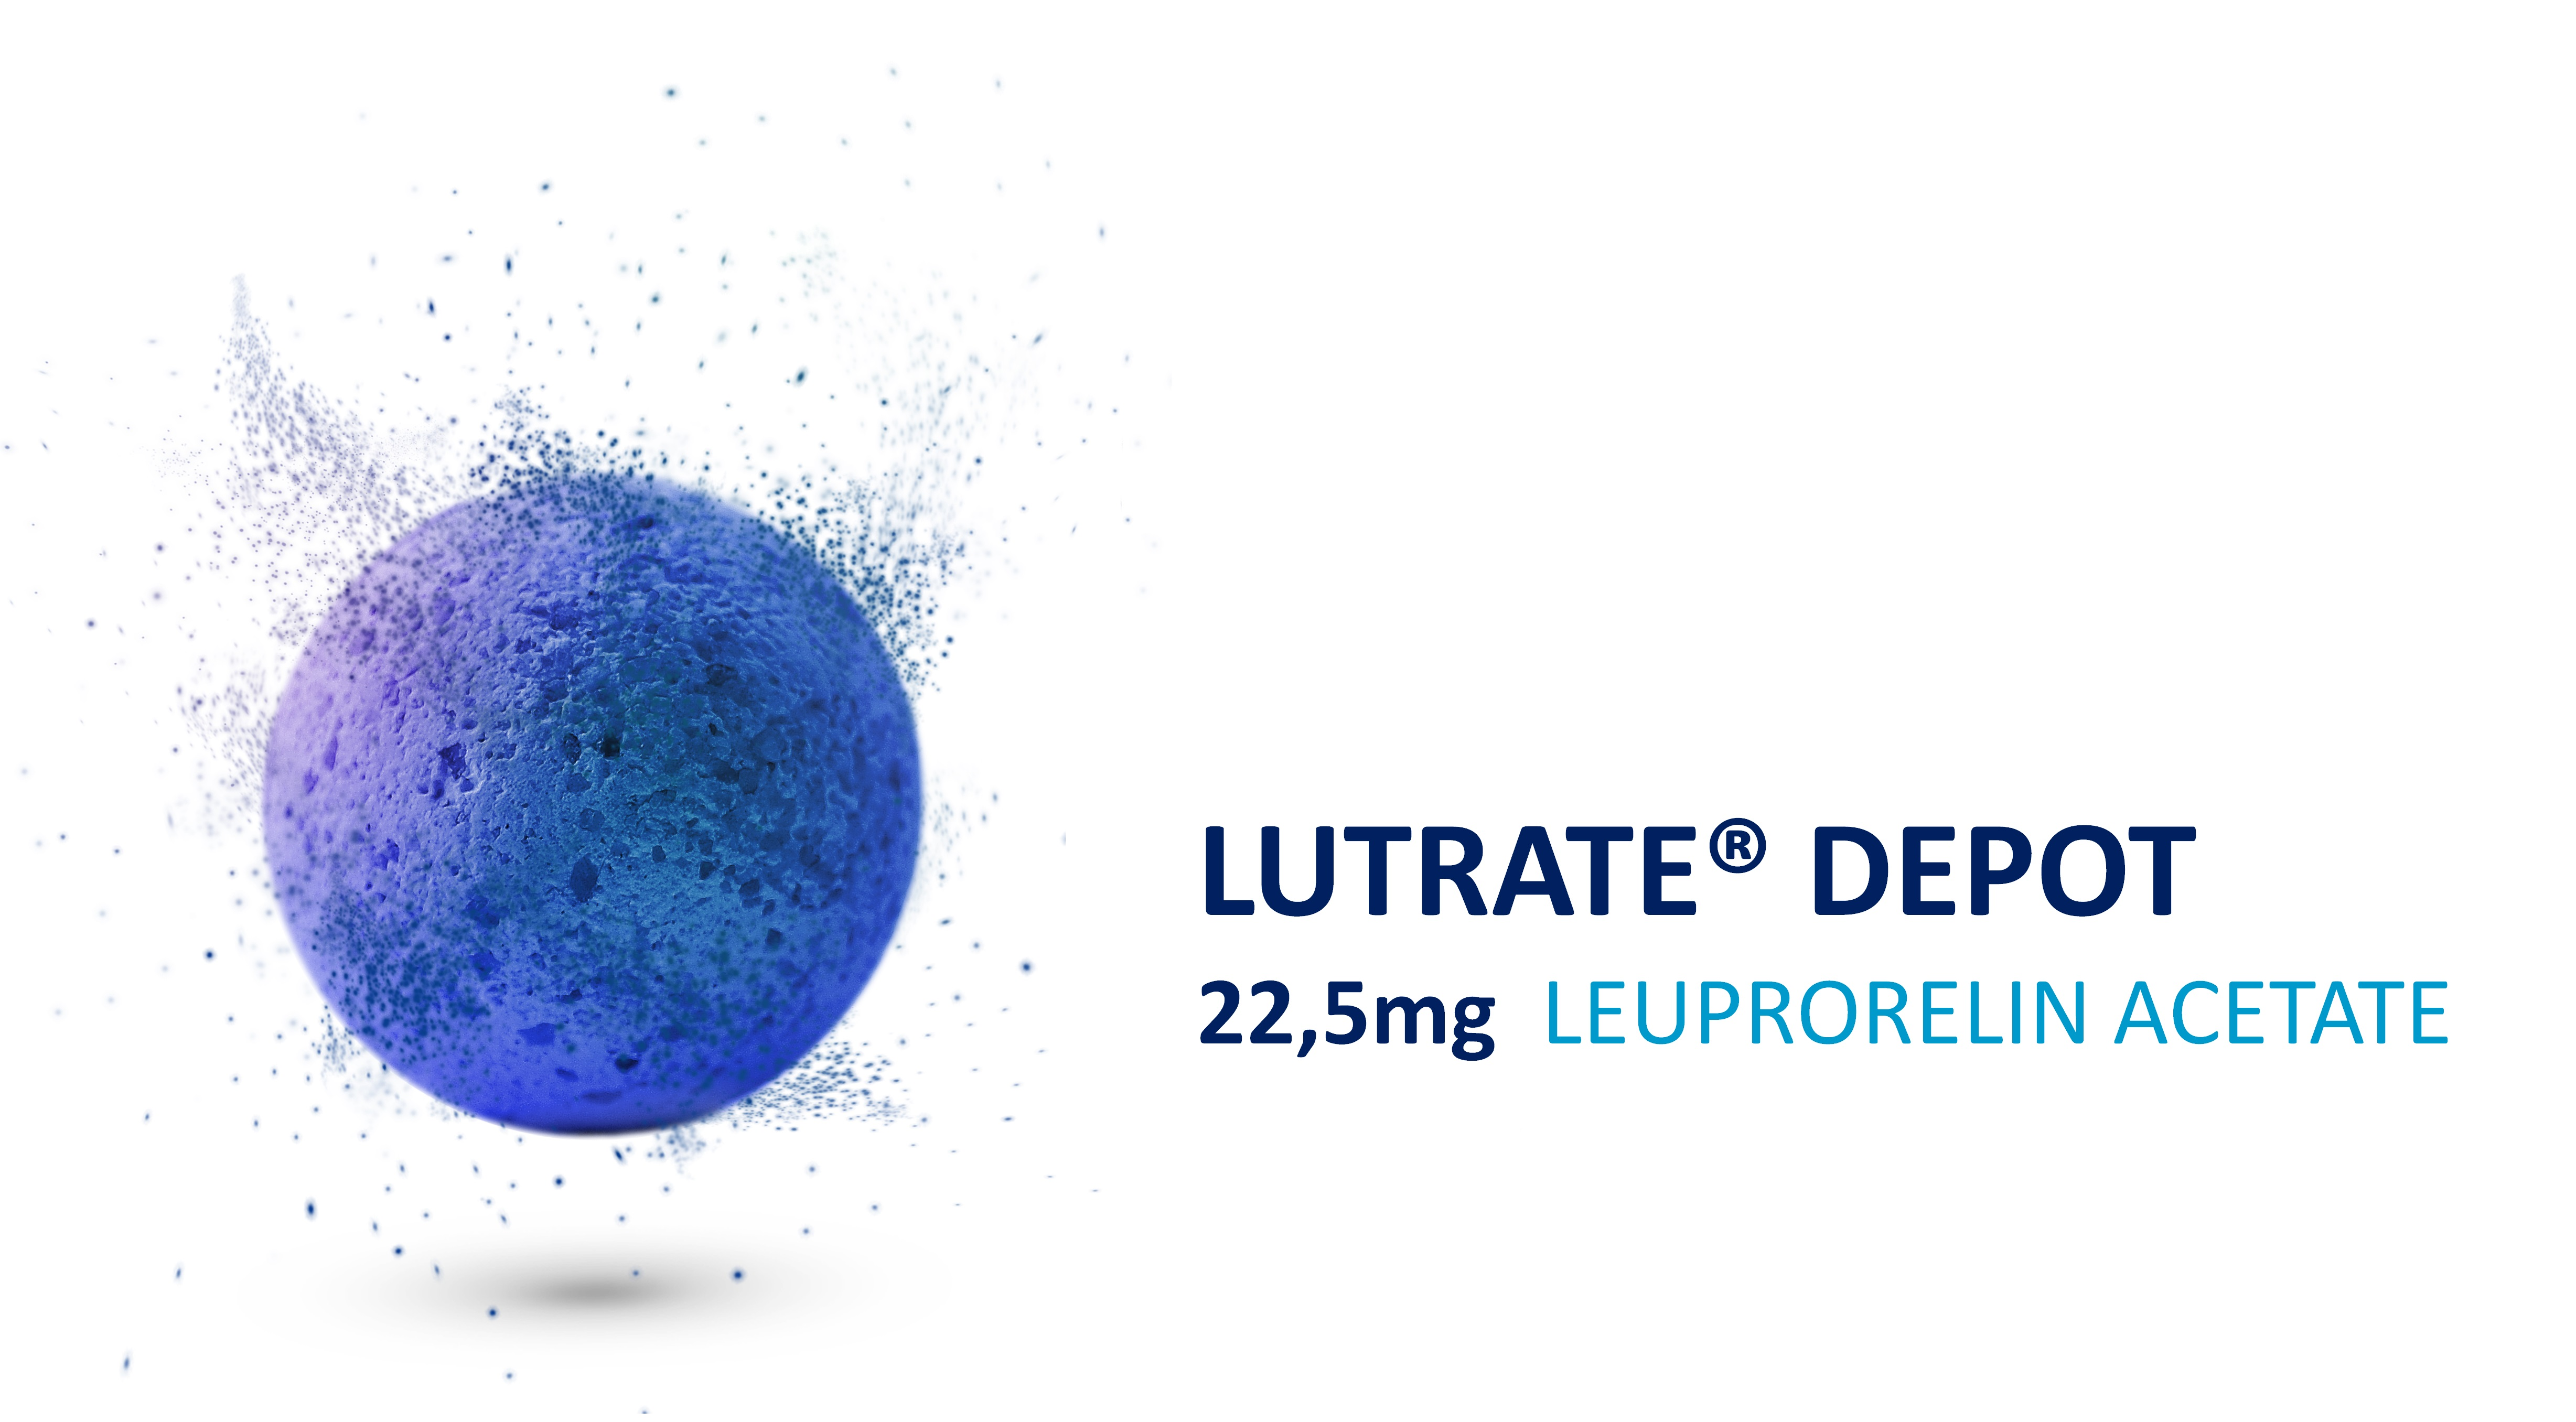 Lutrate® Depot launch in UK